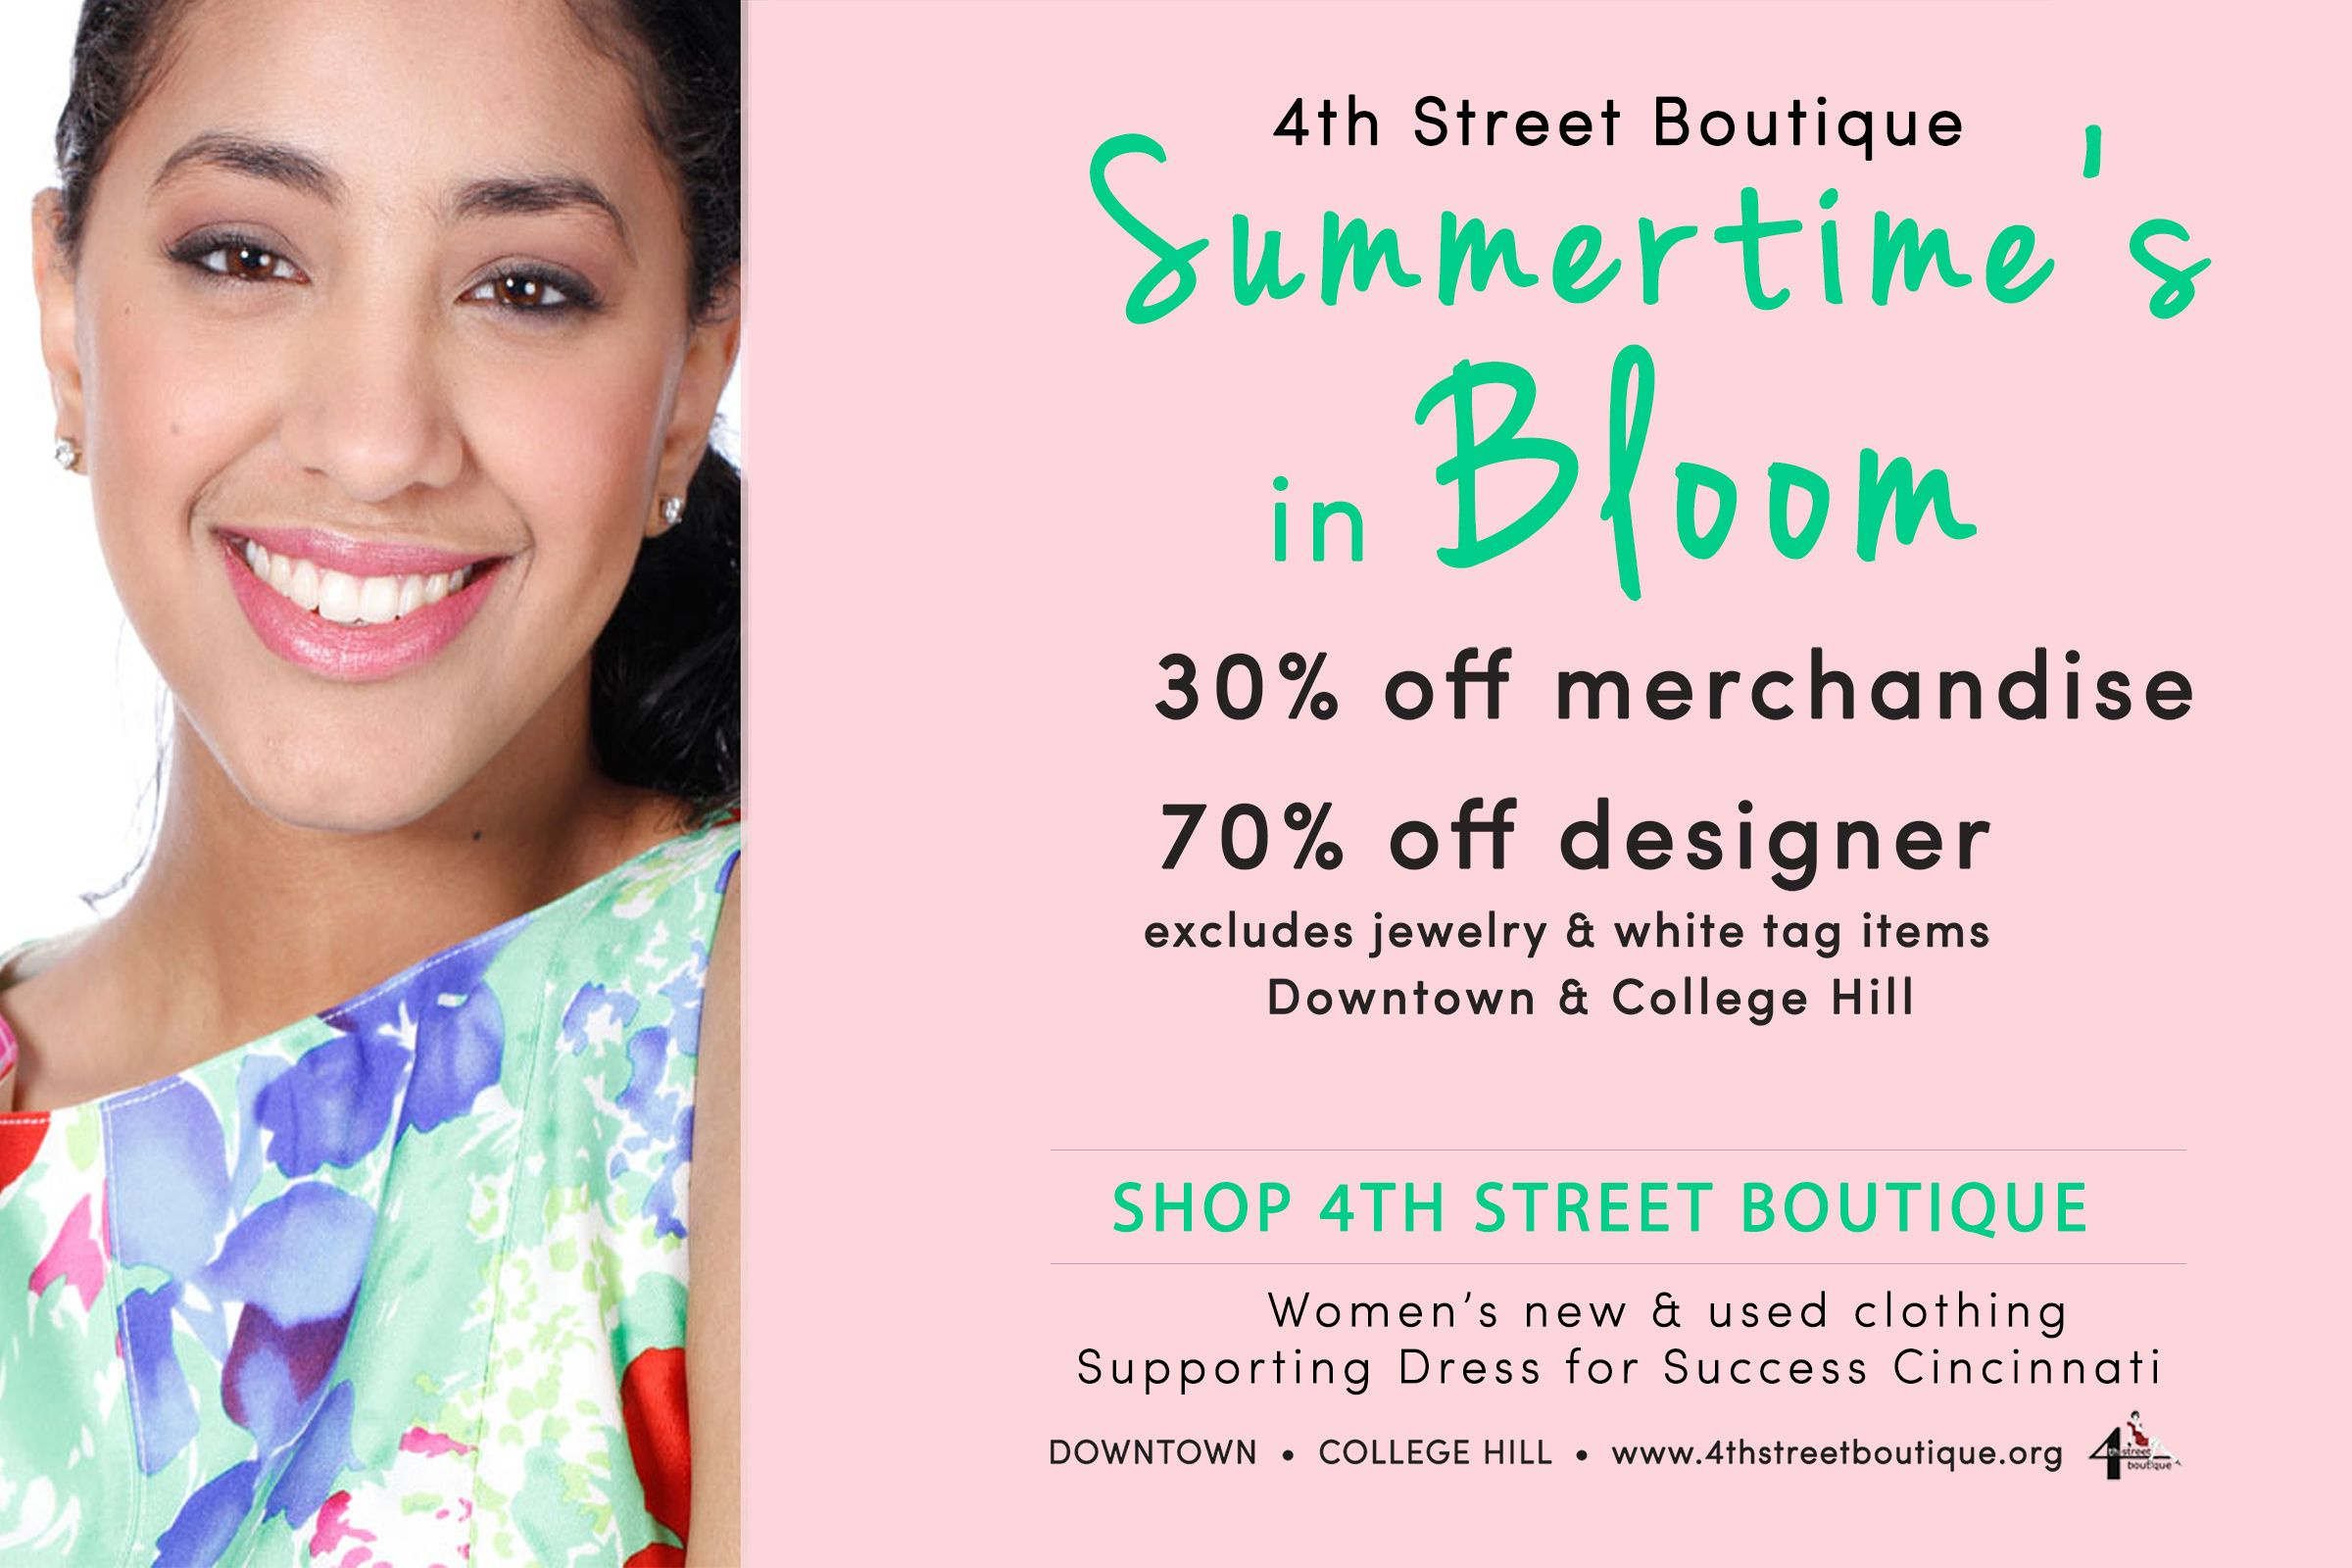 June 3-15  30% off merchandise  70% off designer  Downtown and College Hill